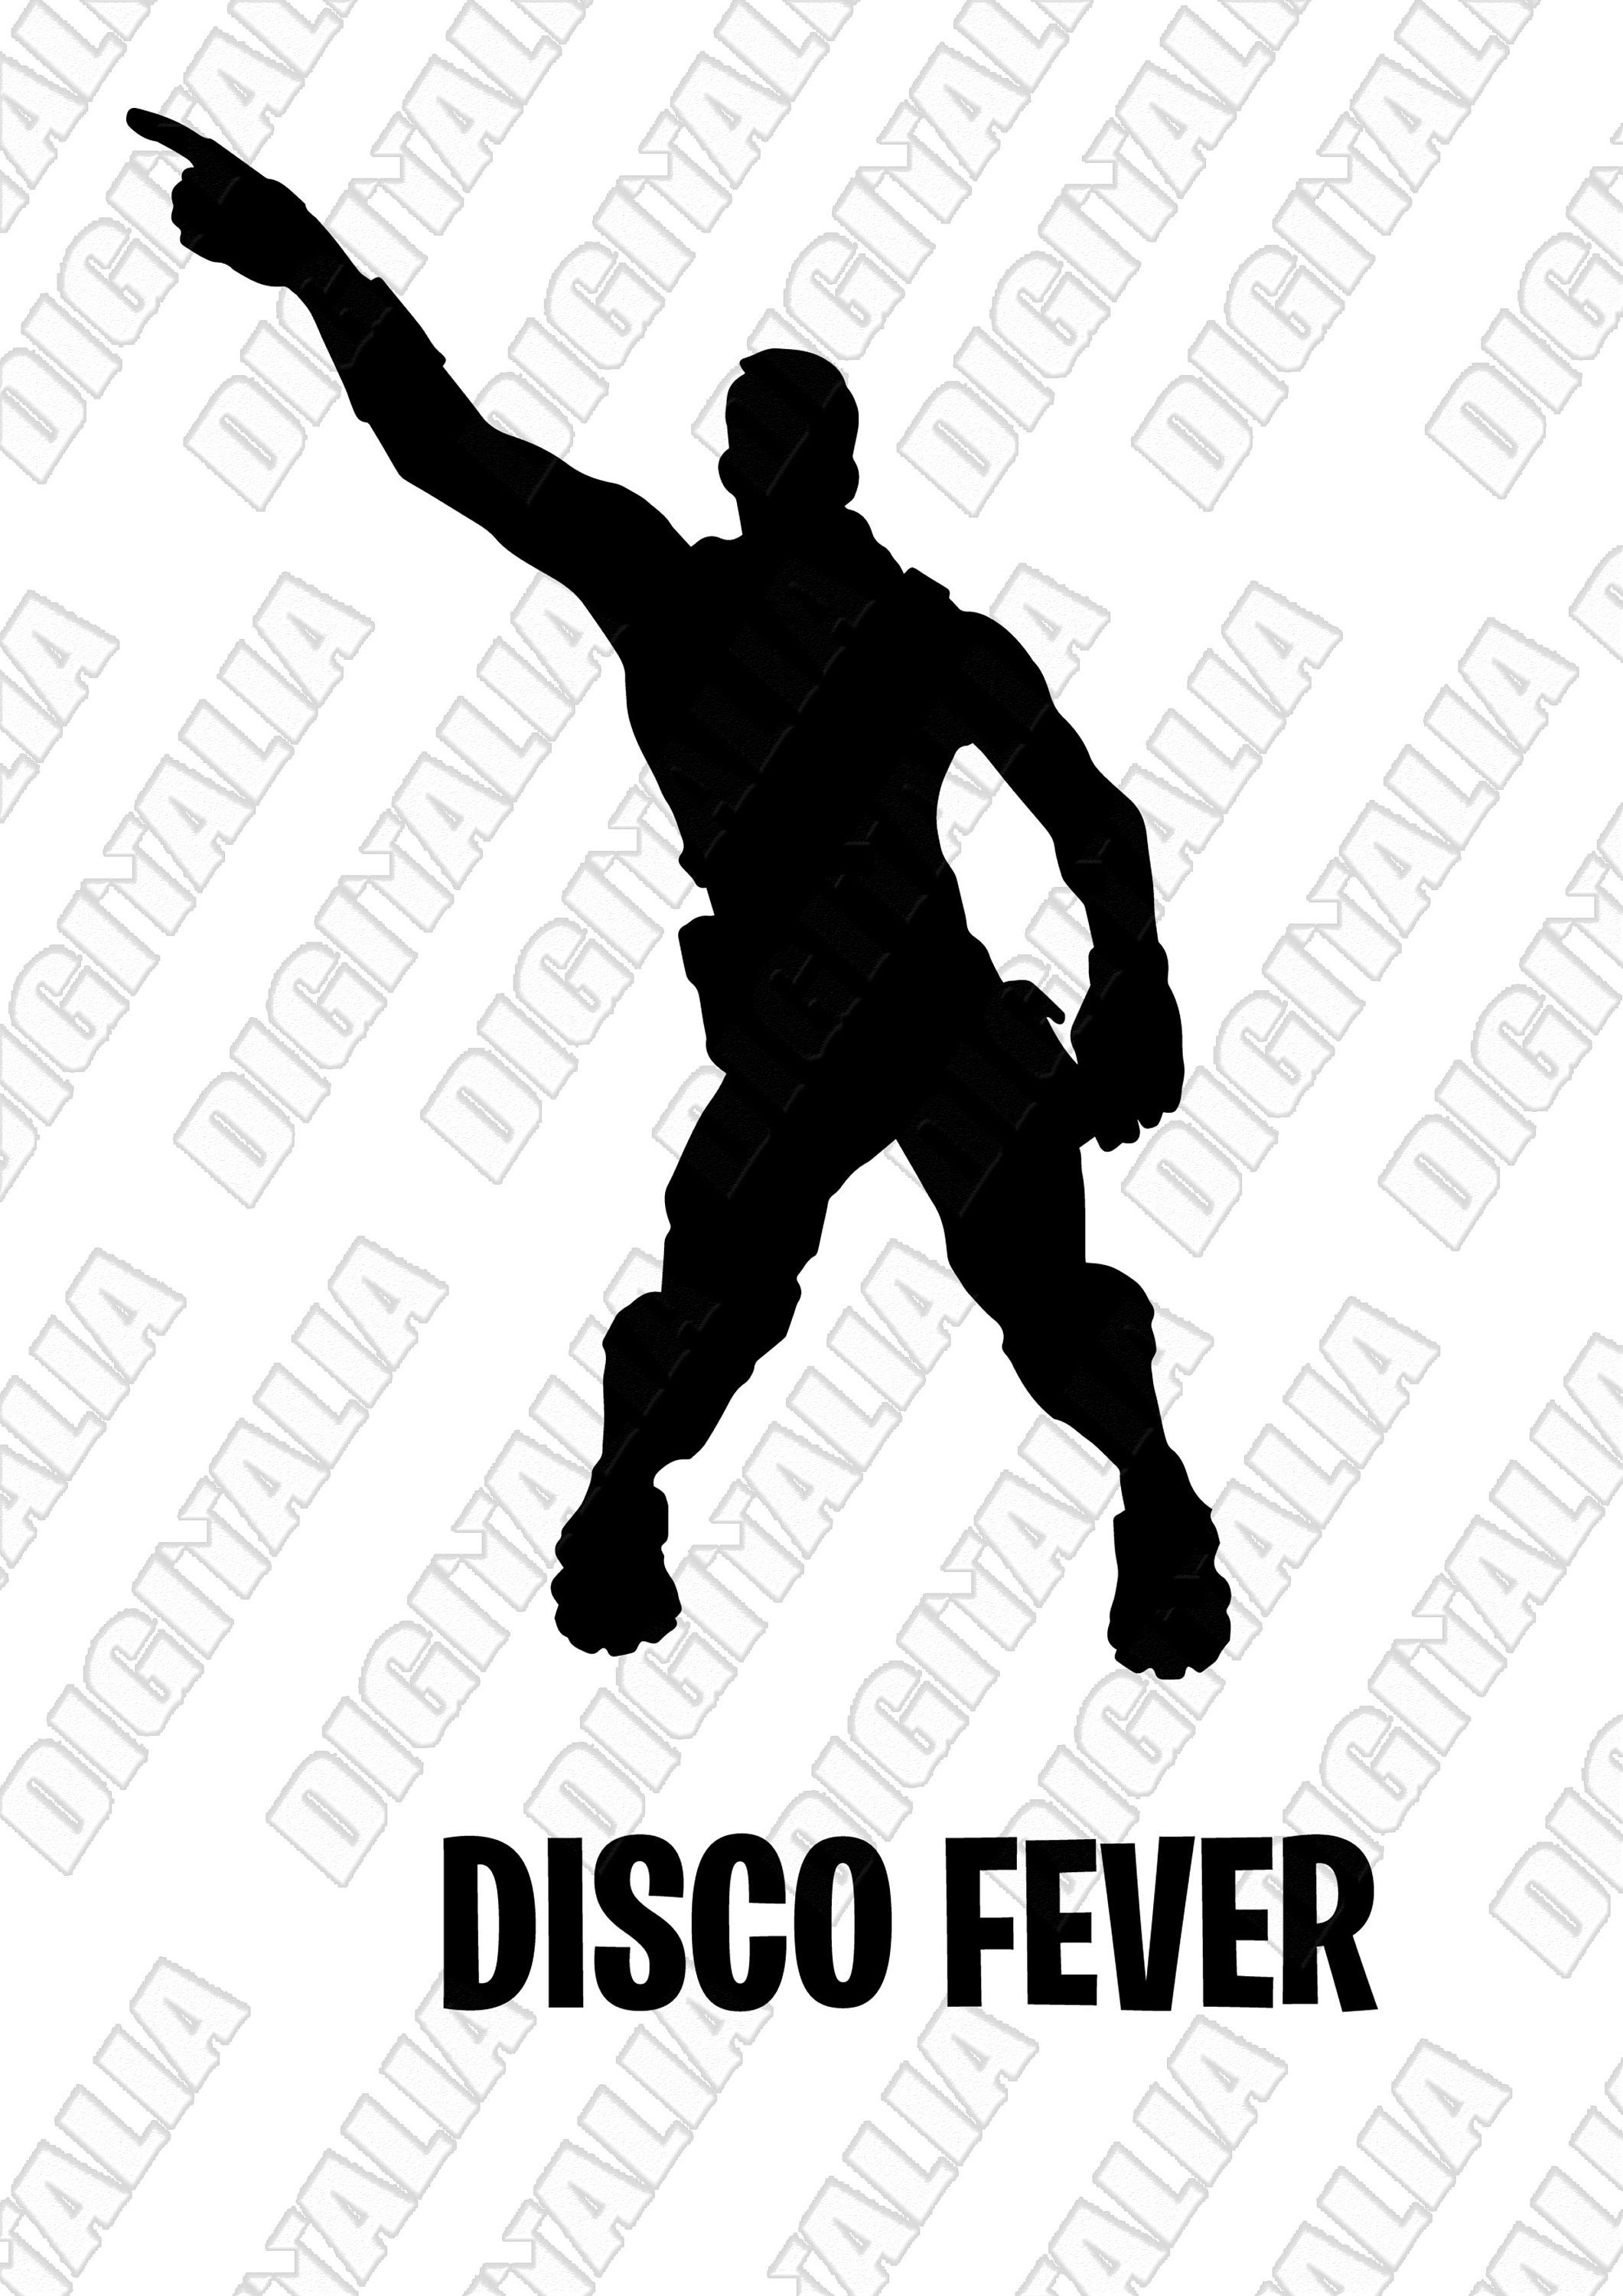 Emote Dance Printable Wall Stickers Svg Clipart Stencils Fortnite Inspired Png With Transparent Backgrou Dance Poster Wall Printables Photoshop Overlays